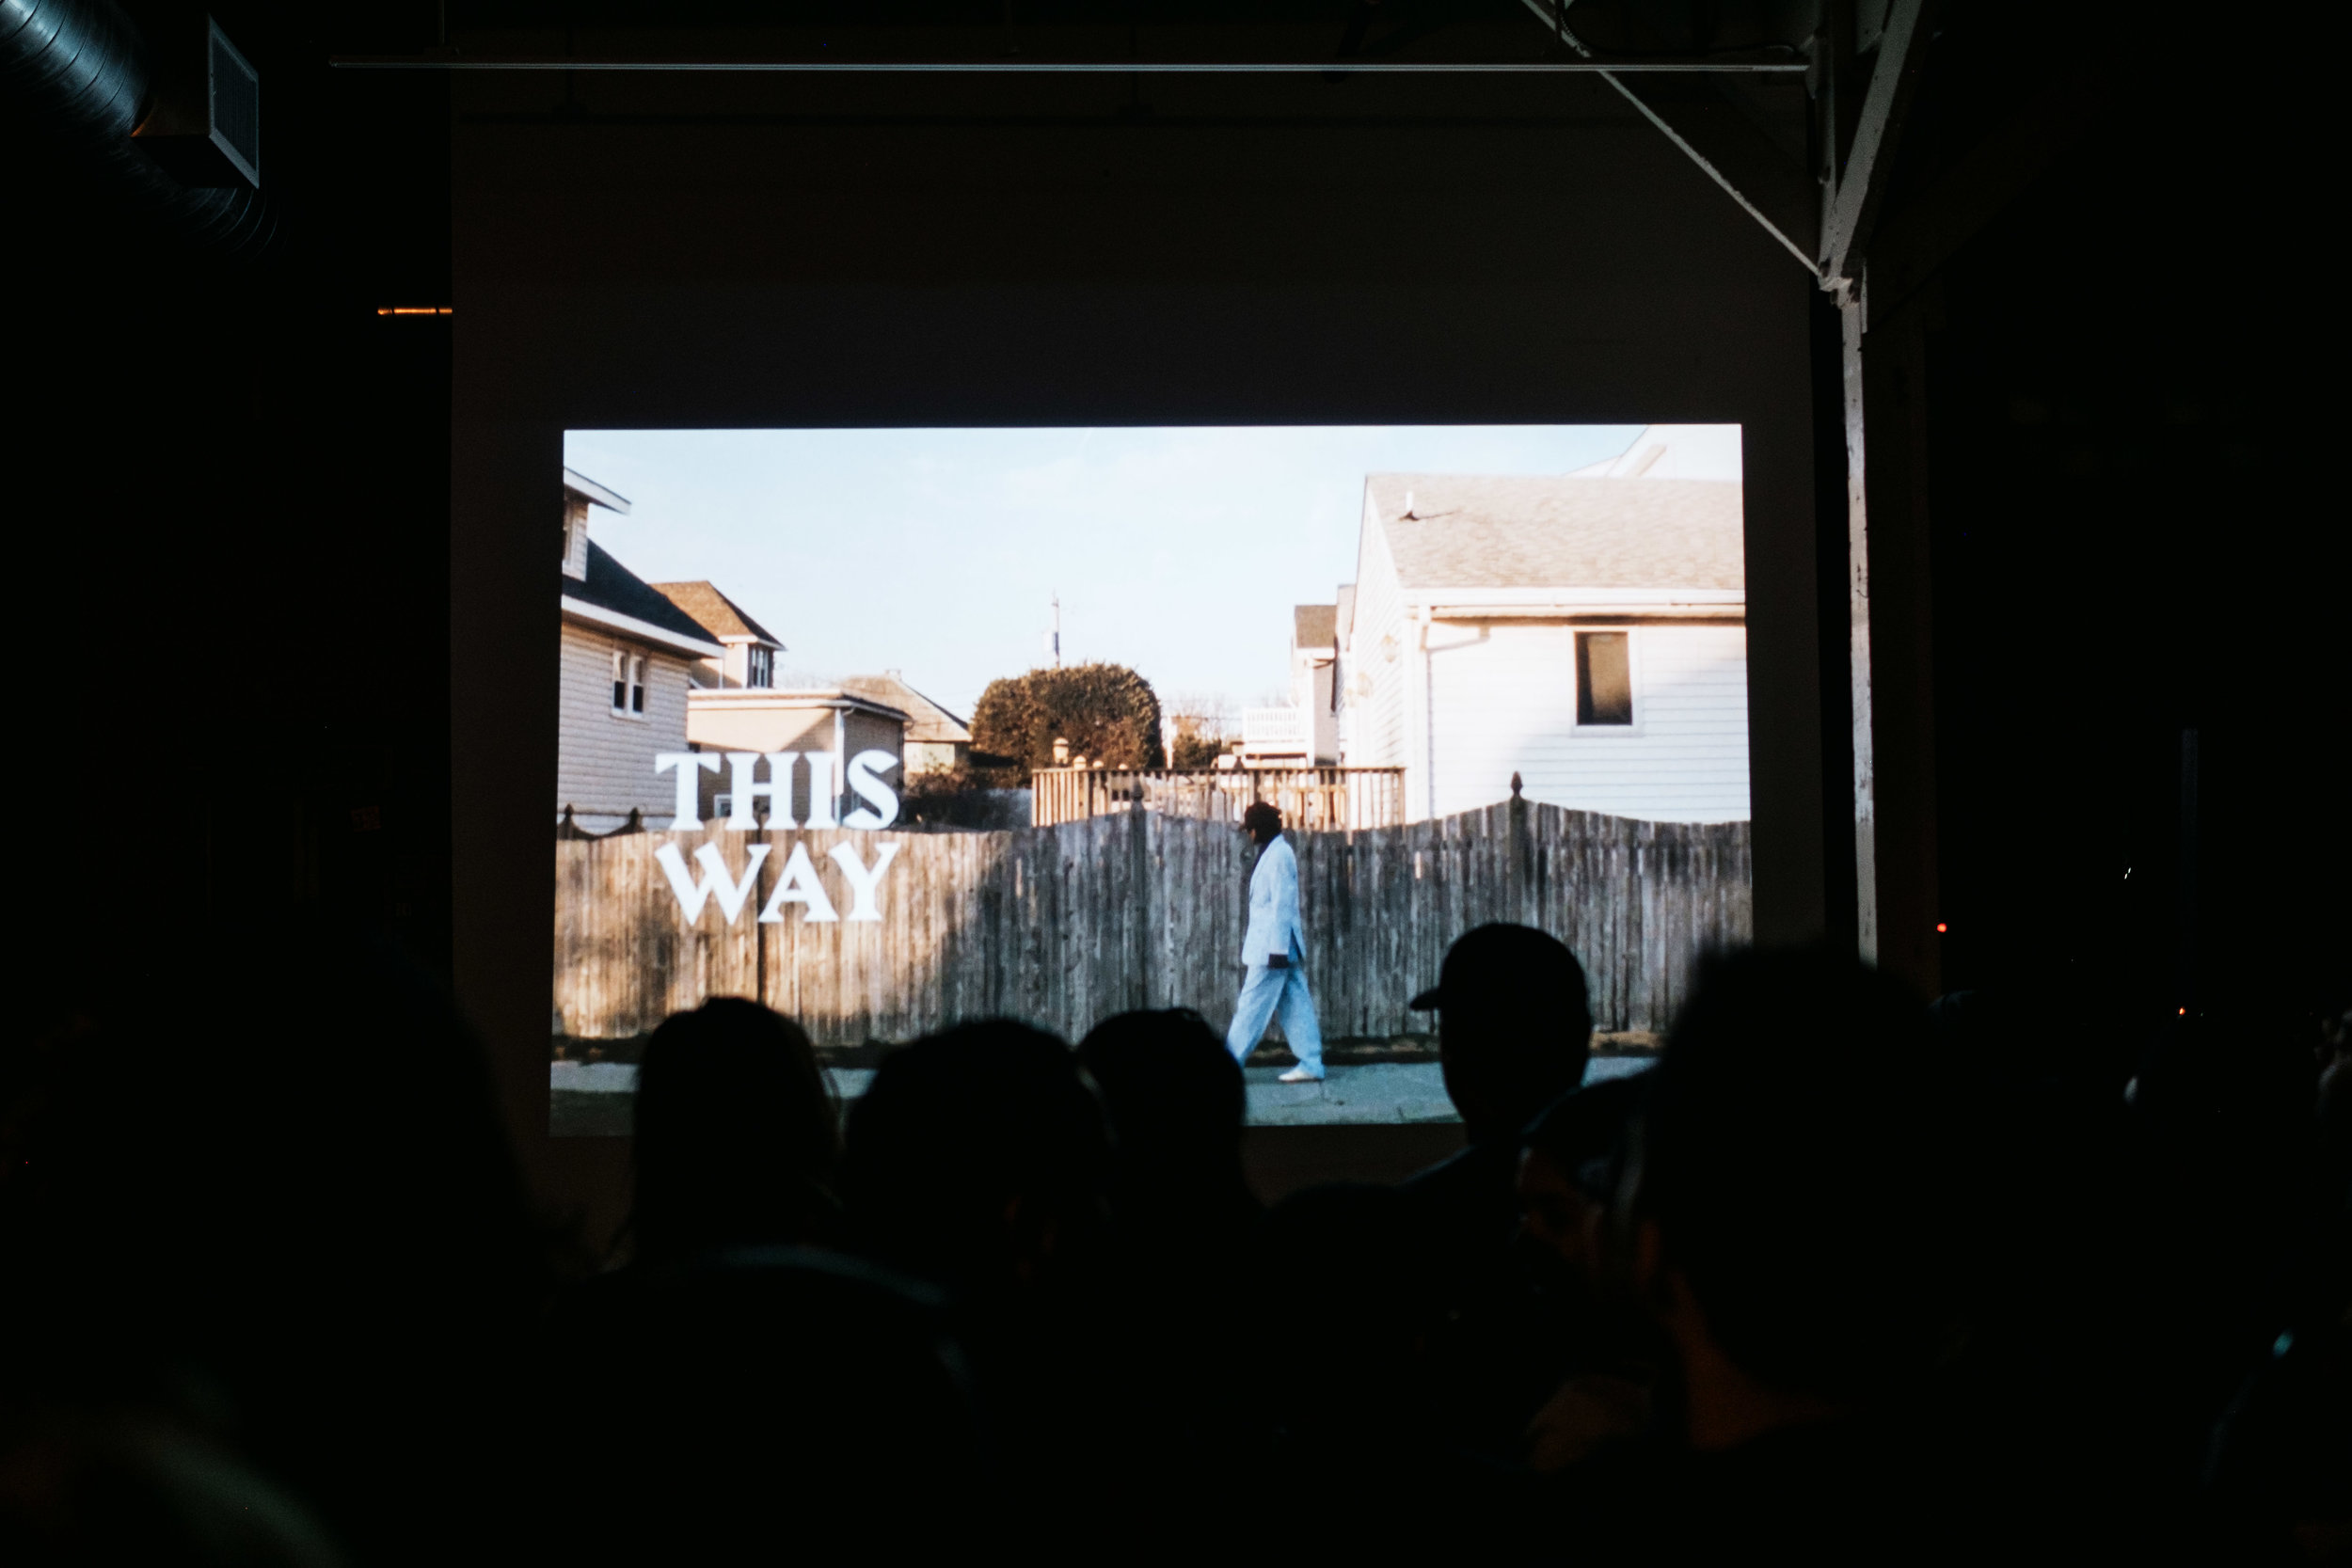 'This Way' on the big screen